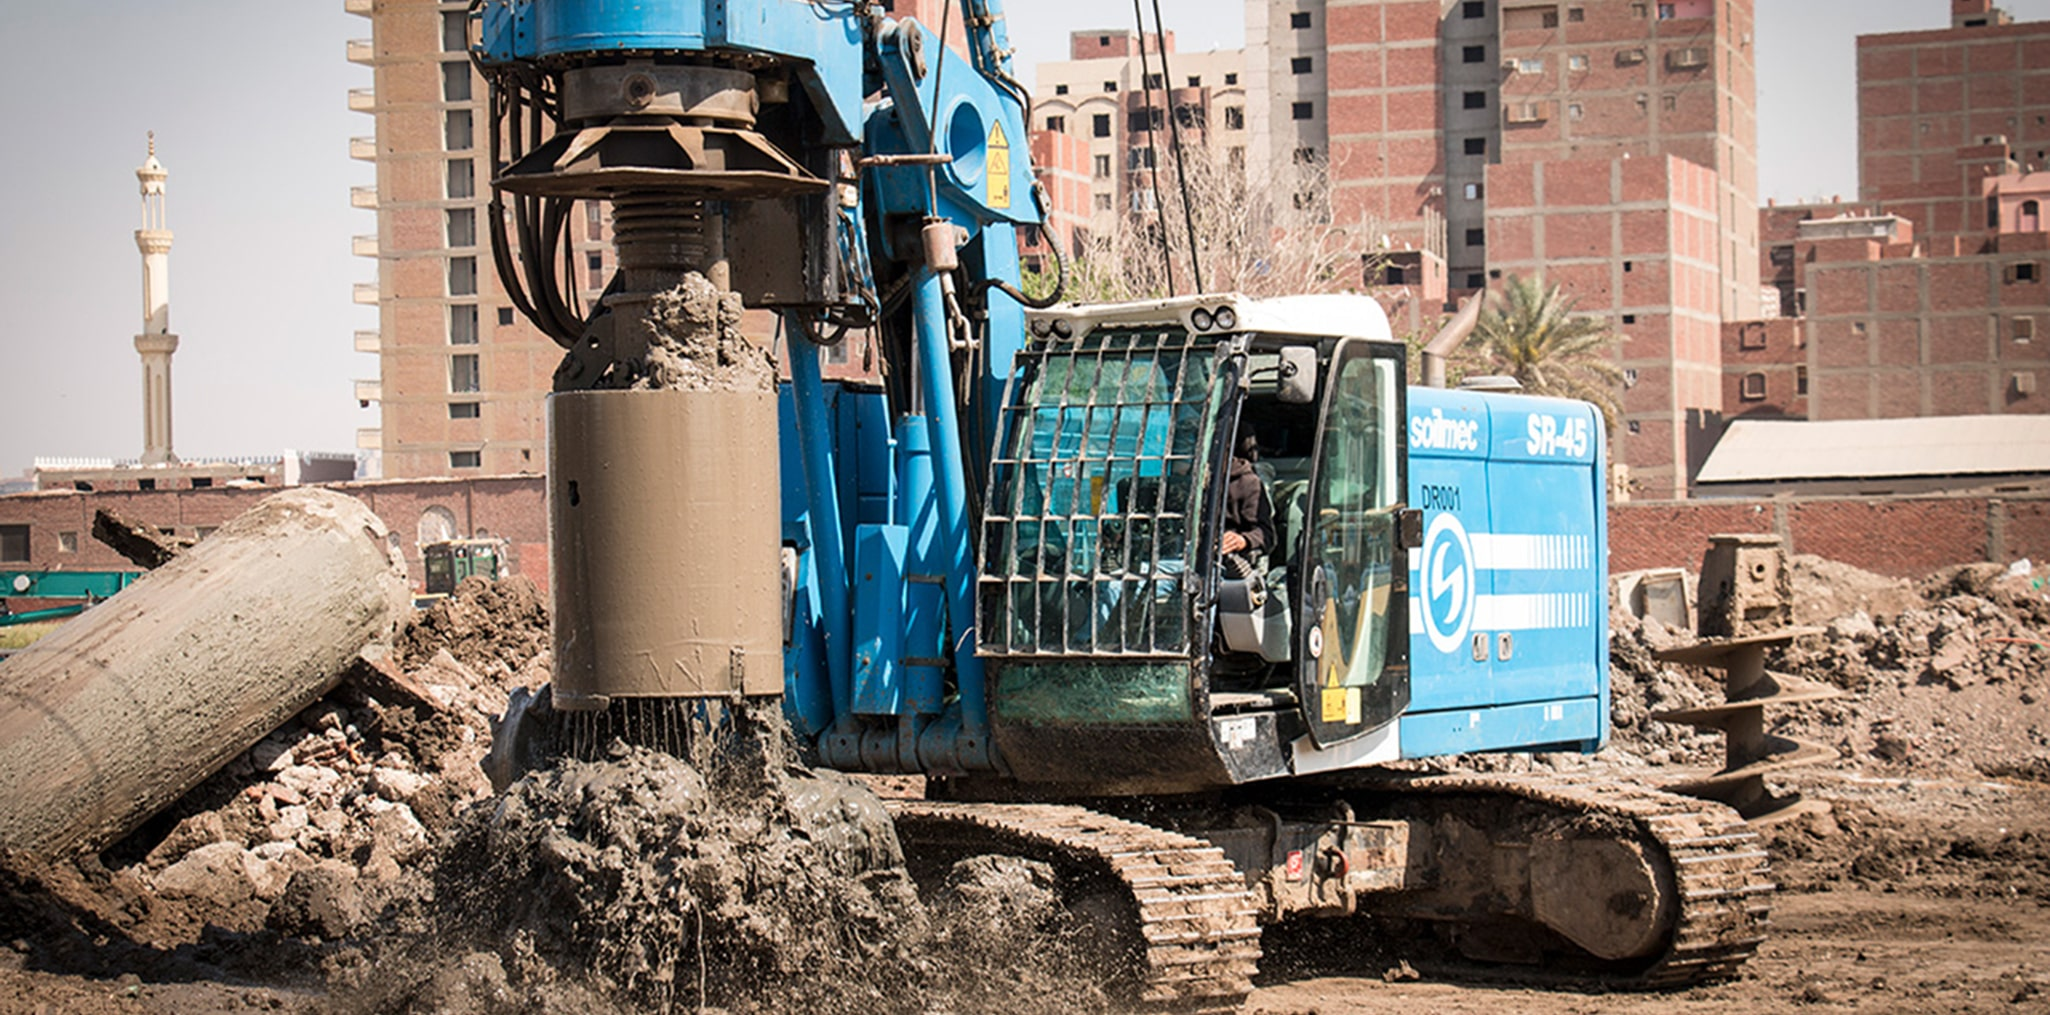 SR-45_BACKGROUND.jpg